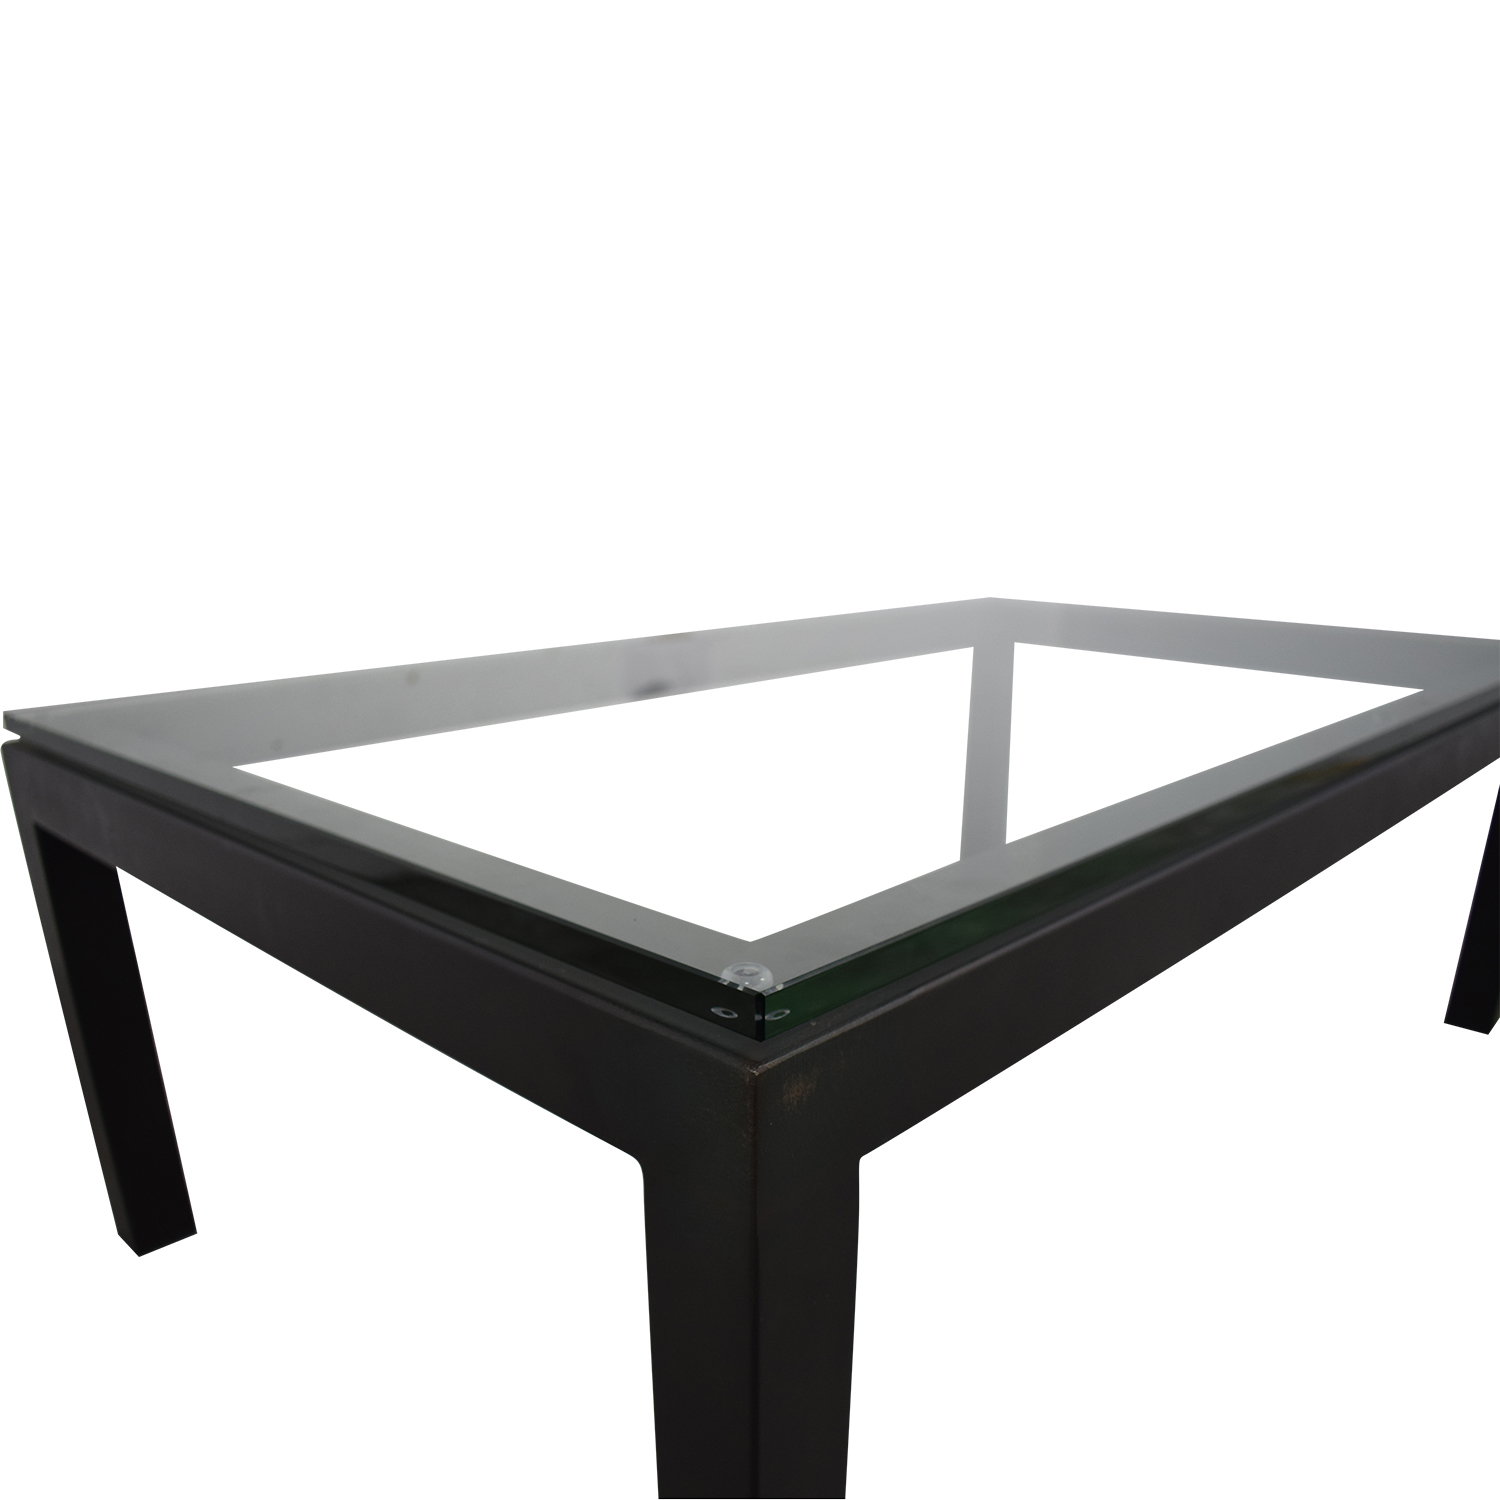 66 off crate barrel crate barrel parsons clear glass top table tables